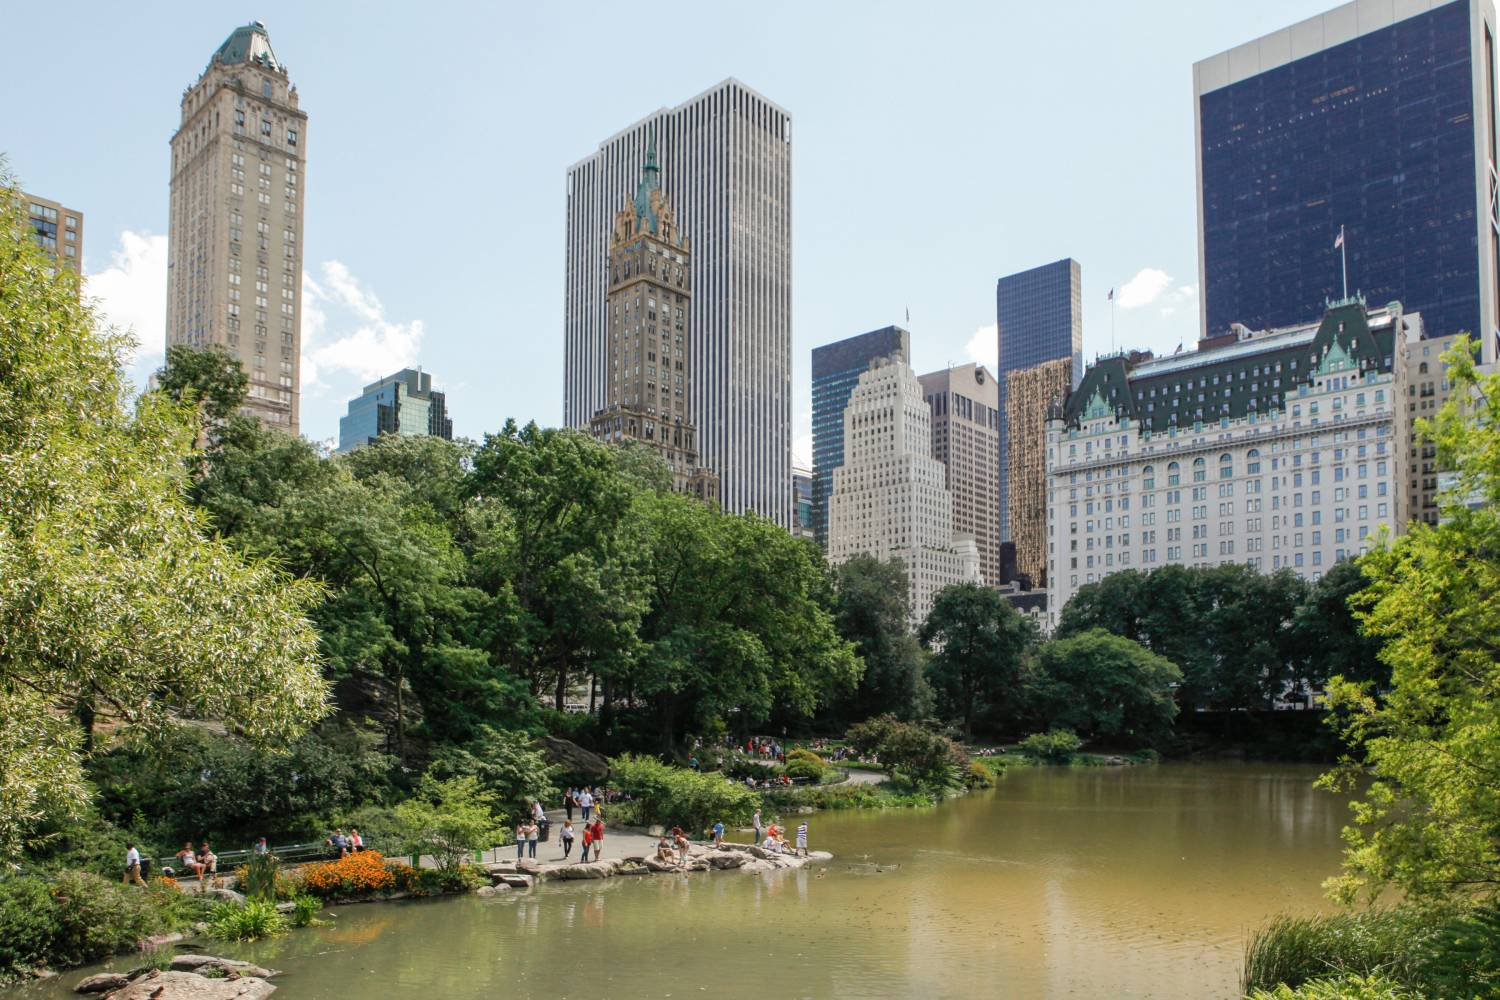 Hotels near Central Park in New York City   Reservations